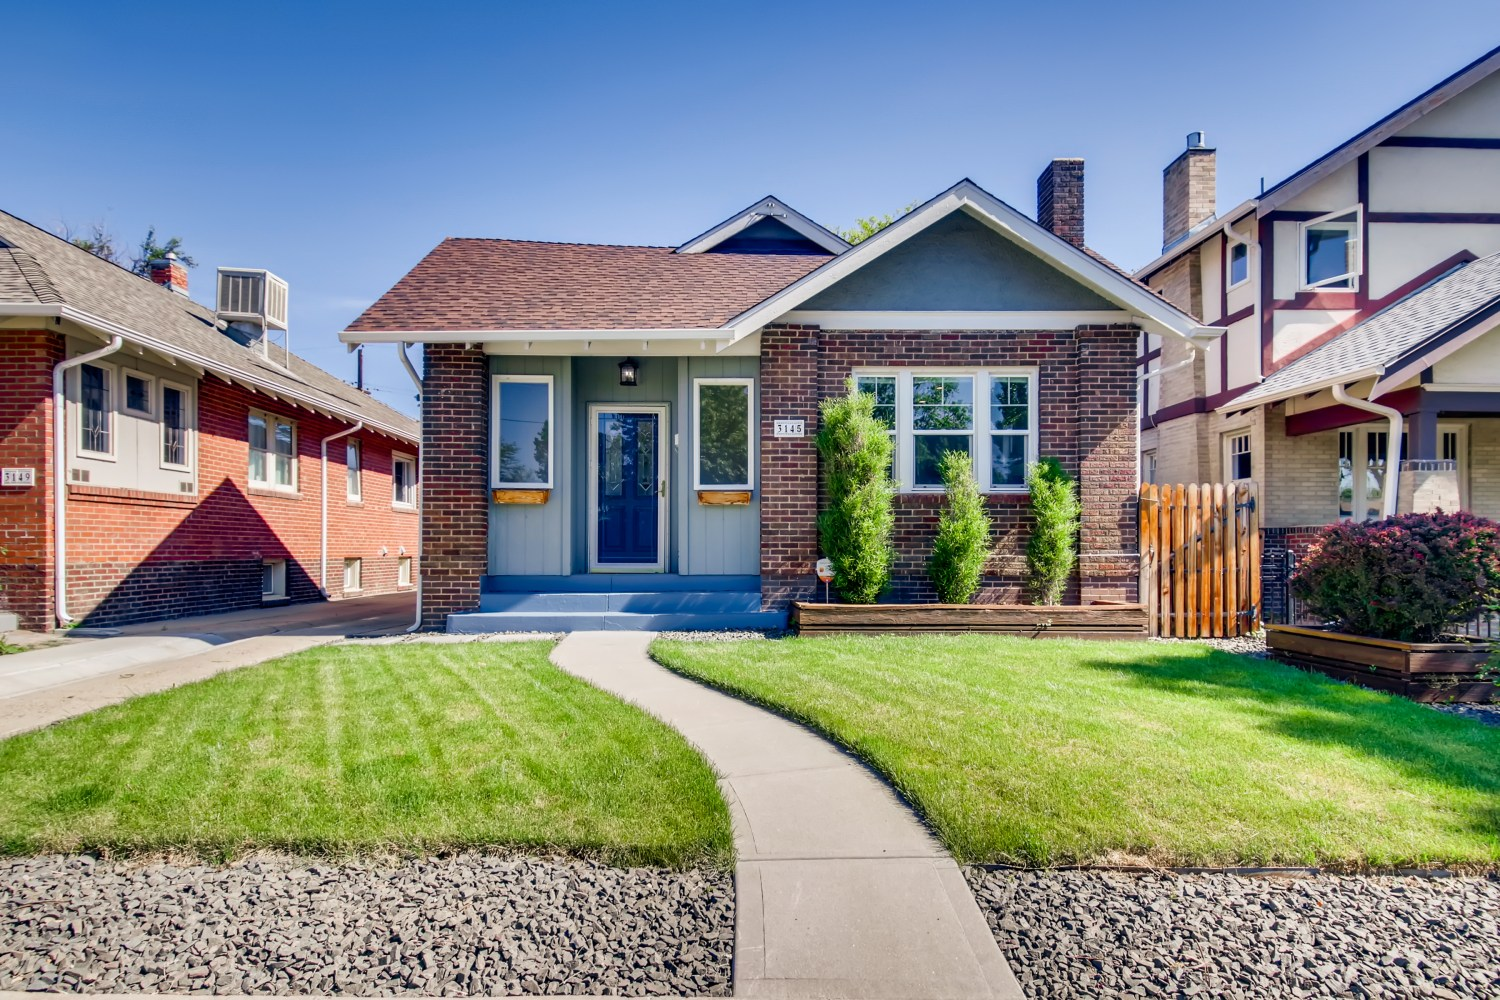 3145 W 44th Ave Denver CO - Web Quality - 002 - 03 Exterior Front